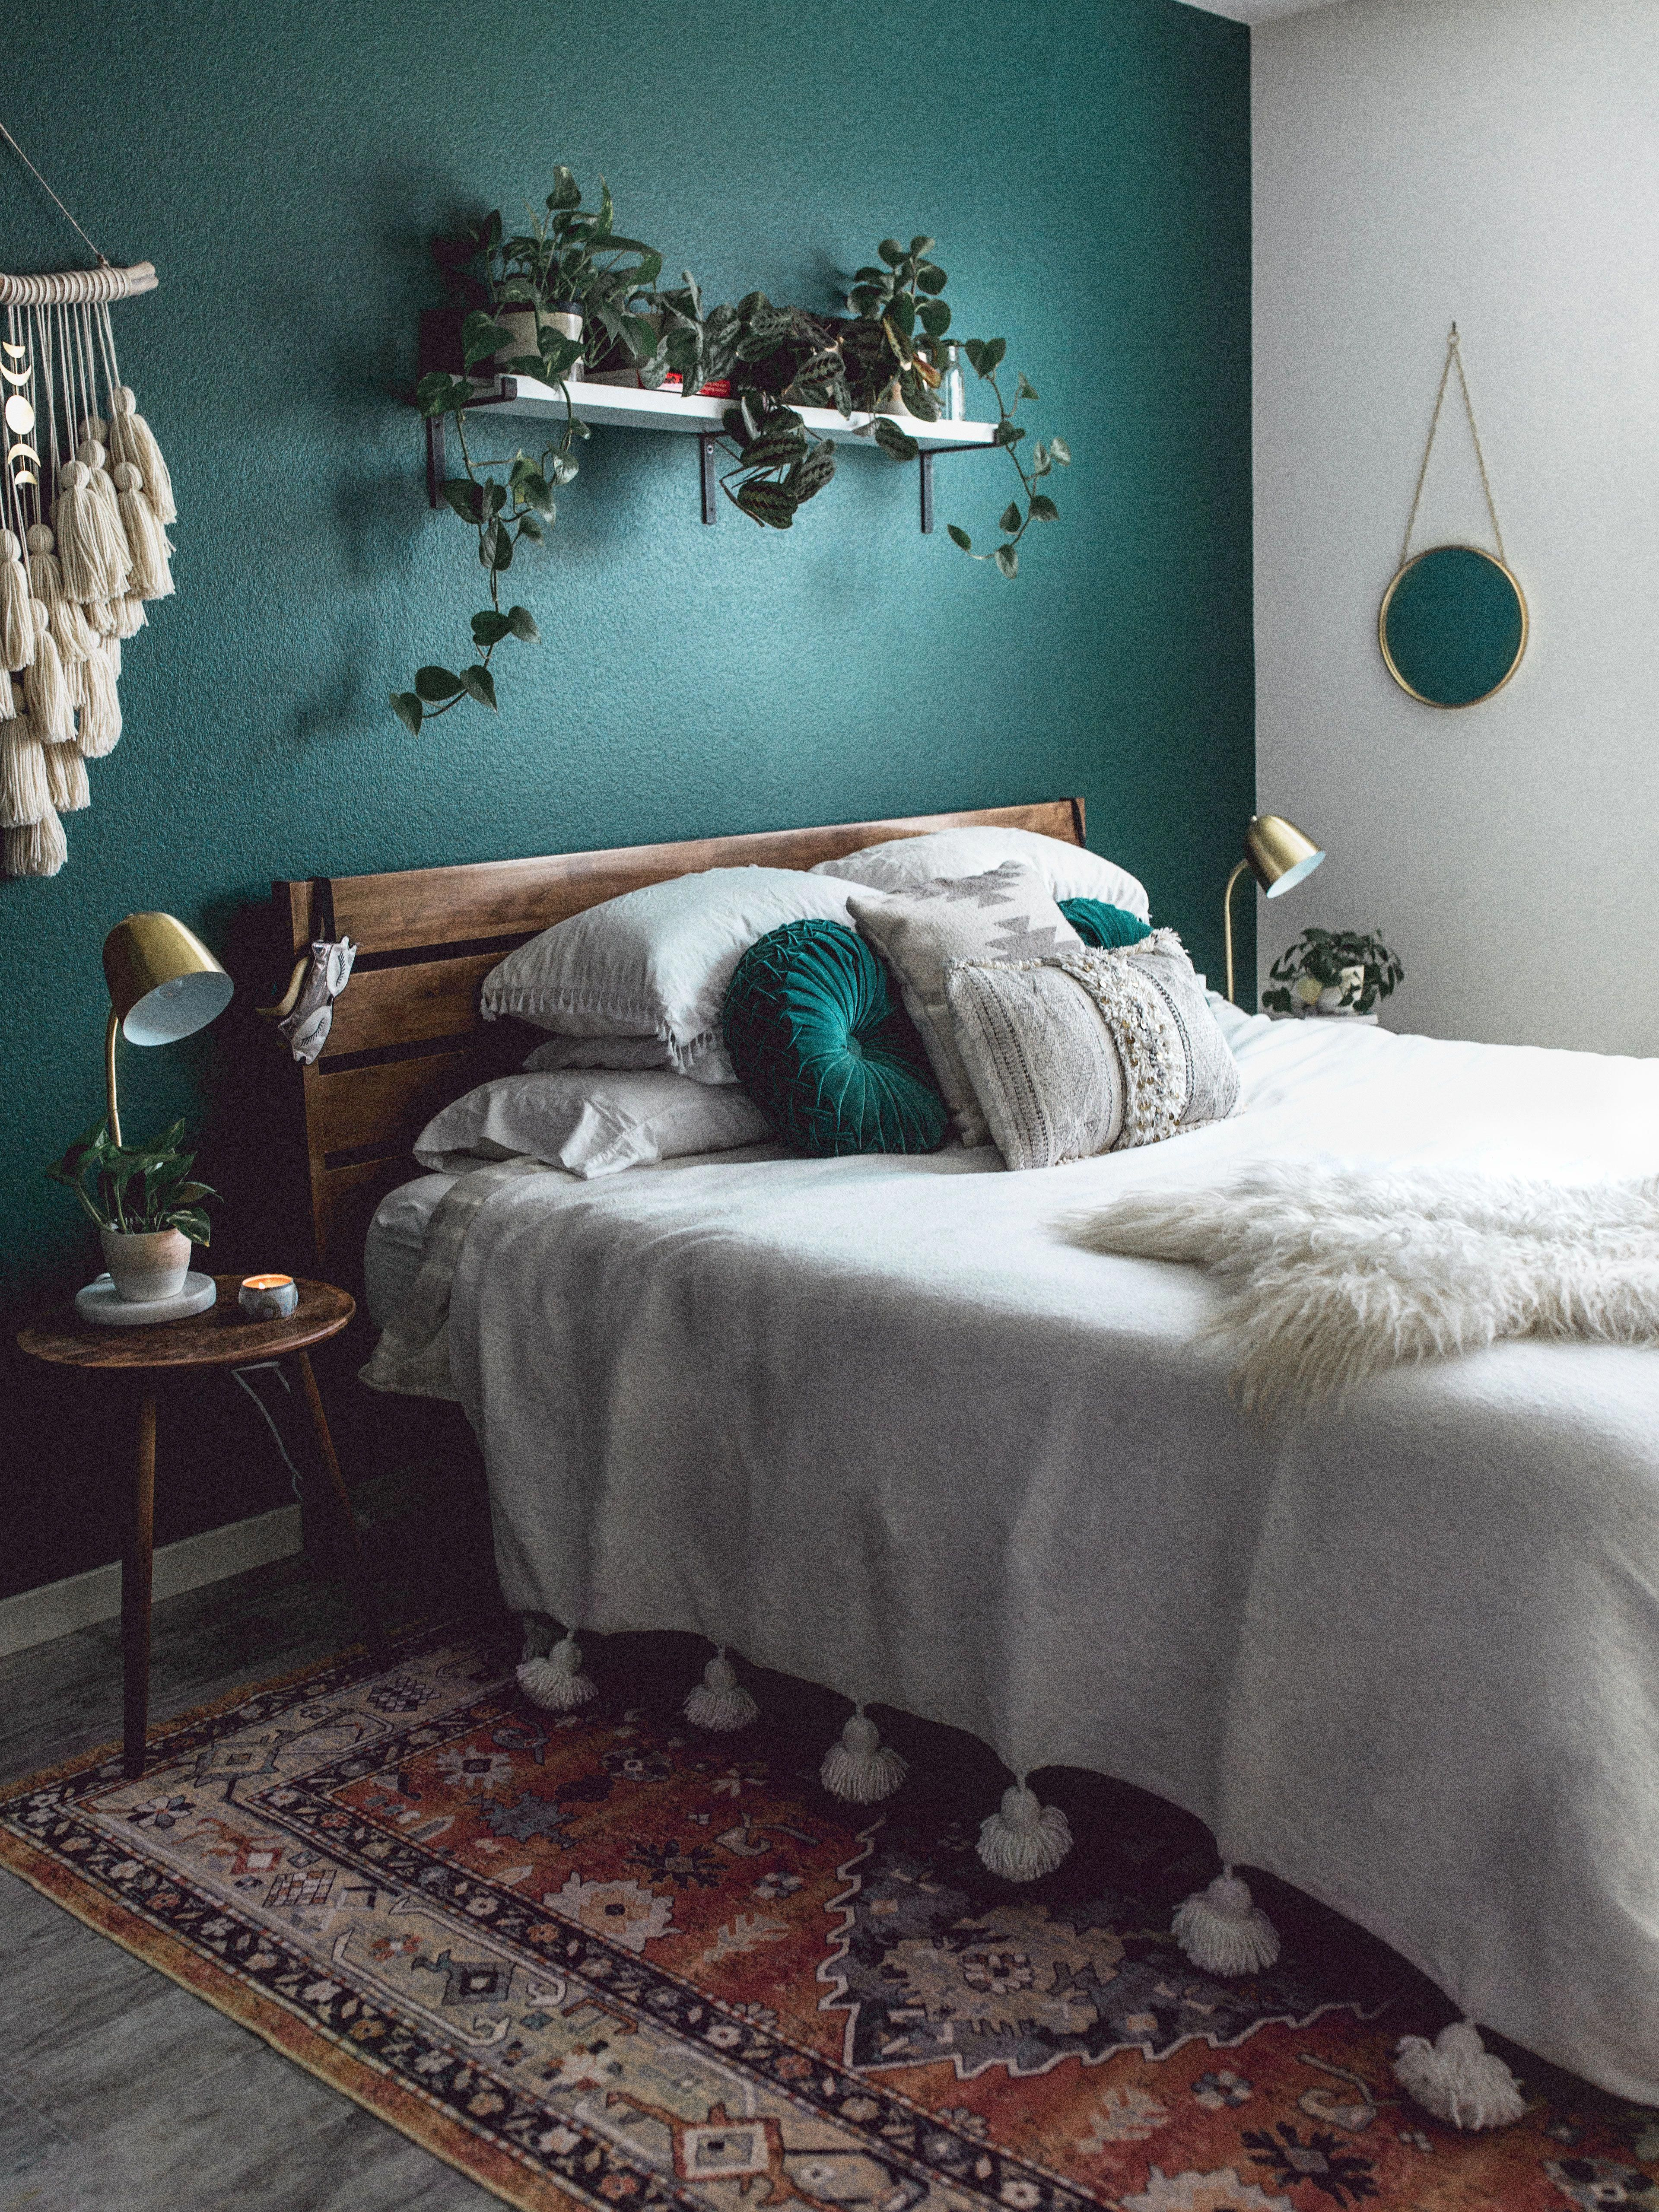 Mid Century Modern Decor - Dark forest green walls contrasted by white details and lots of texture!   #midcentury  #bohemian #bedroom #macrame #darkwall #KidsPlayroomDecor